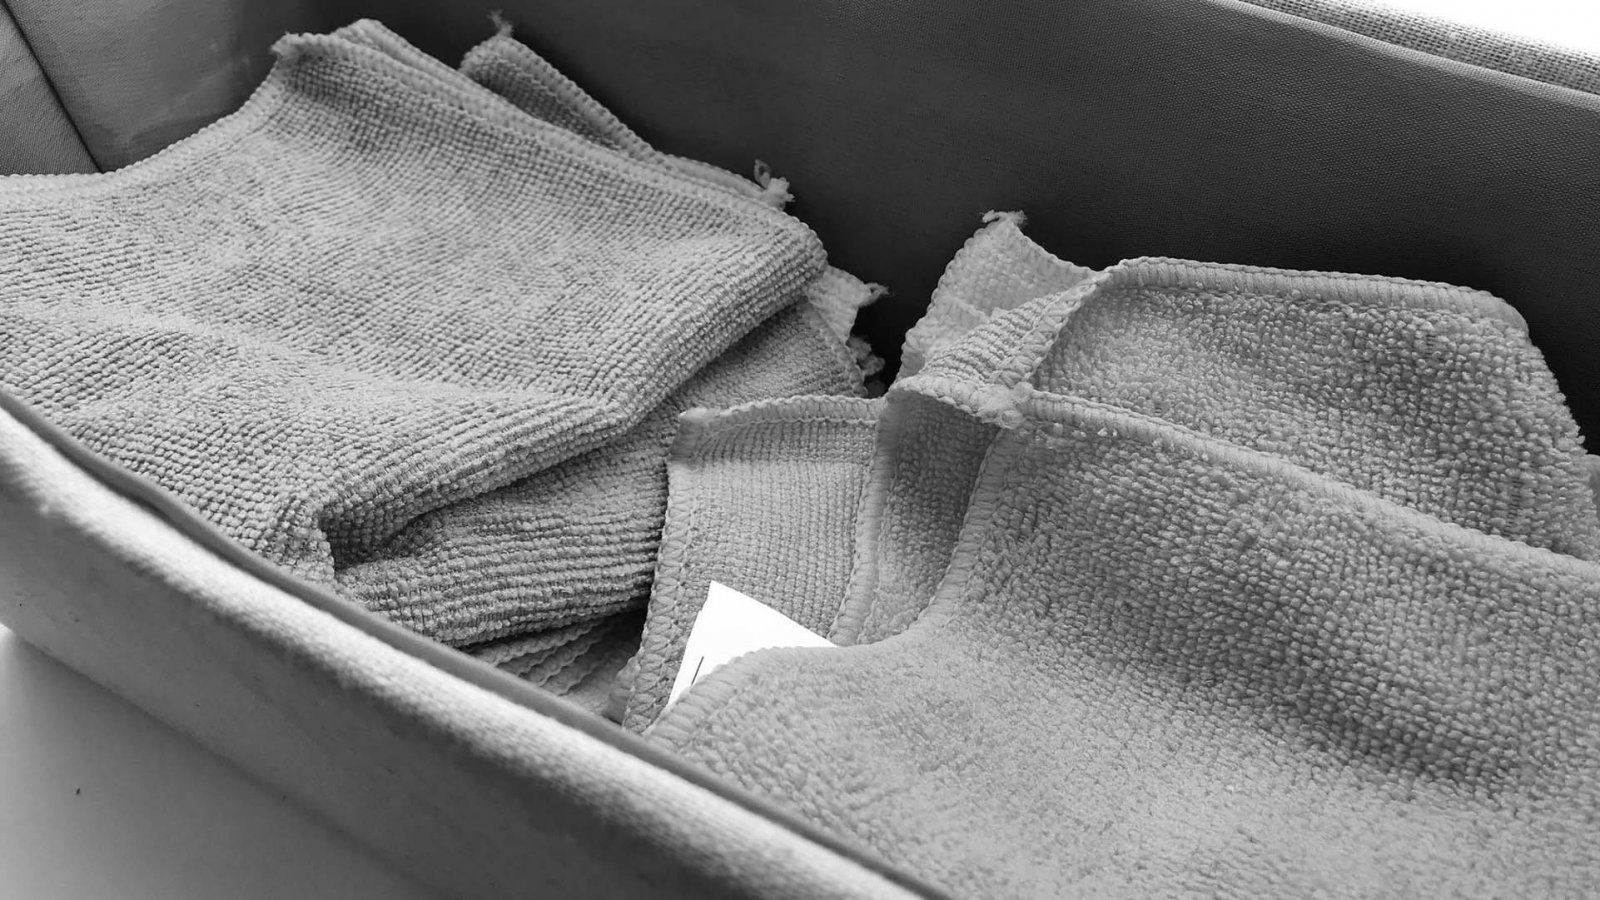 How to Care for Microfiber Towels So They Last as Long as Possible